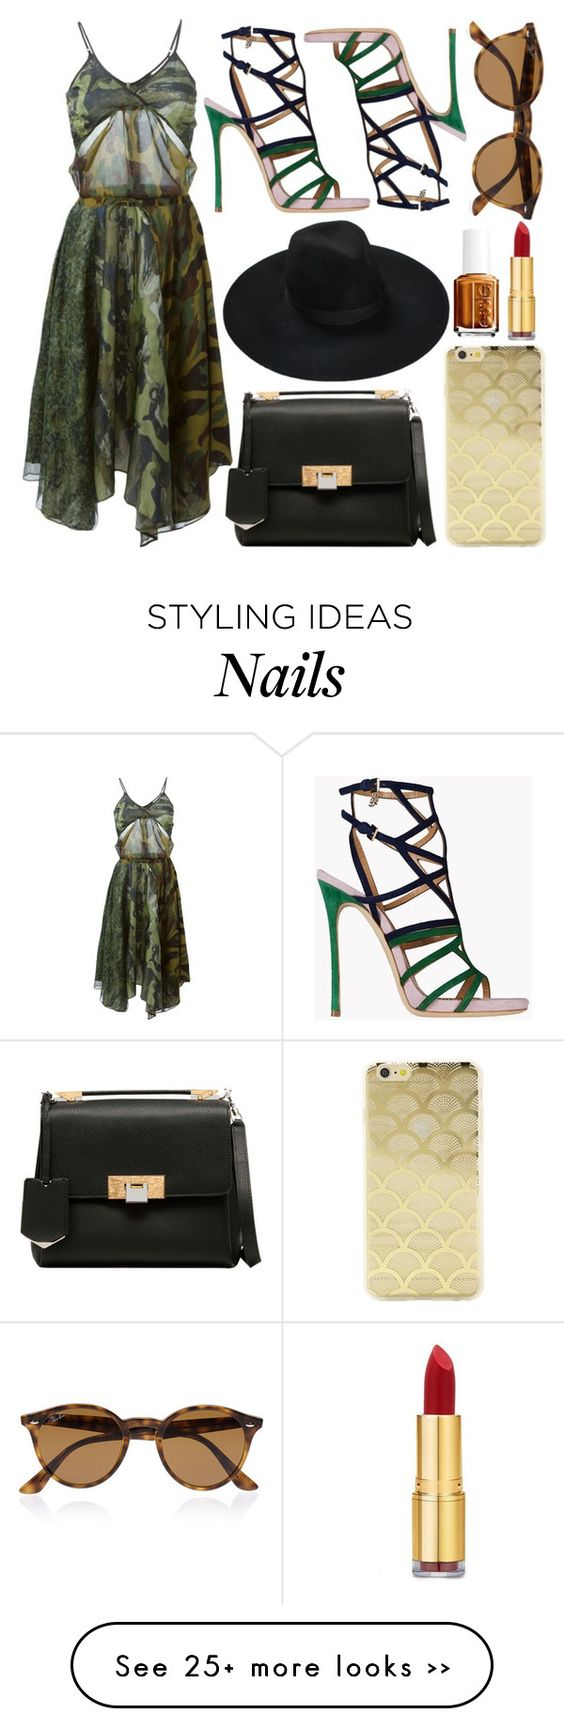 """♡"" by brenndha on Polyvore featuring Diesel, Dsquared2, Sonix, Balenciaga, Ray-Ban, Isaac Mizrahi, Essie, GetTheLook, gorgeous and Luxe"